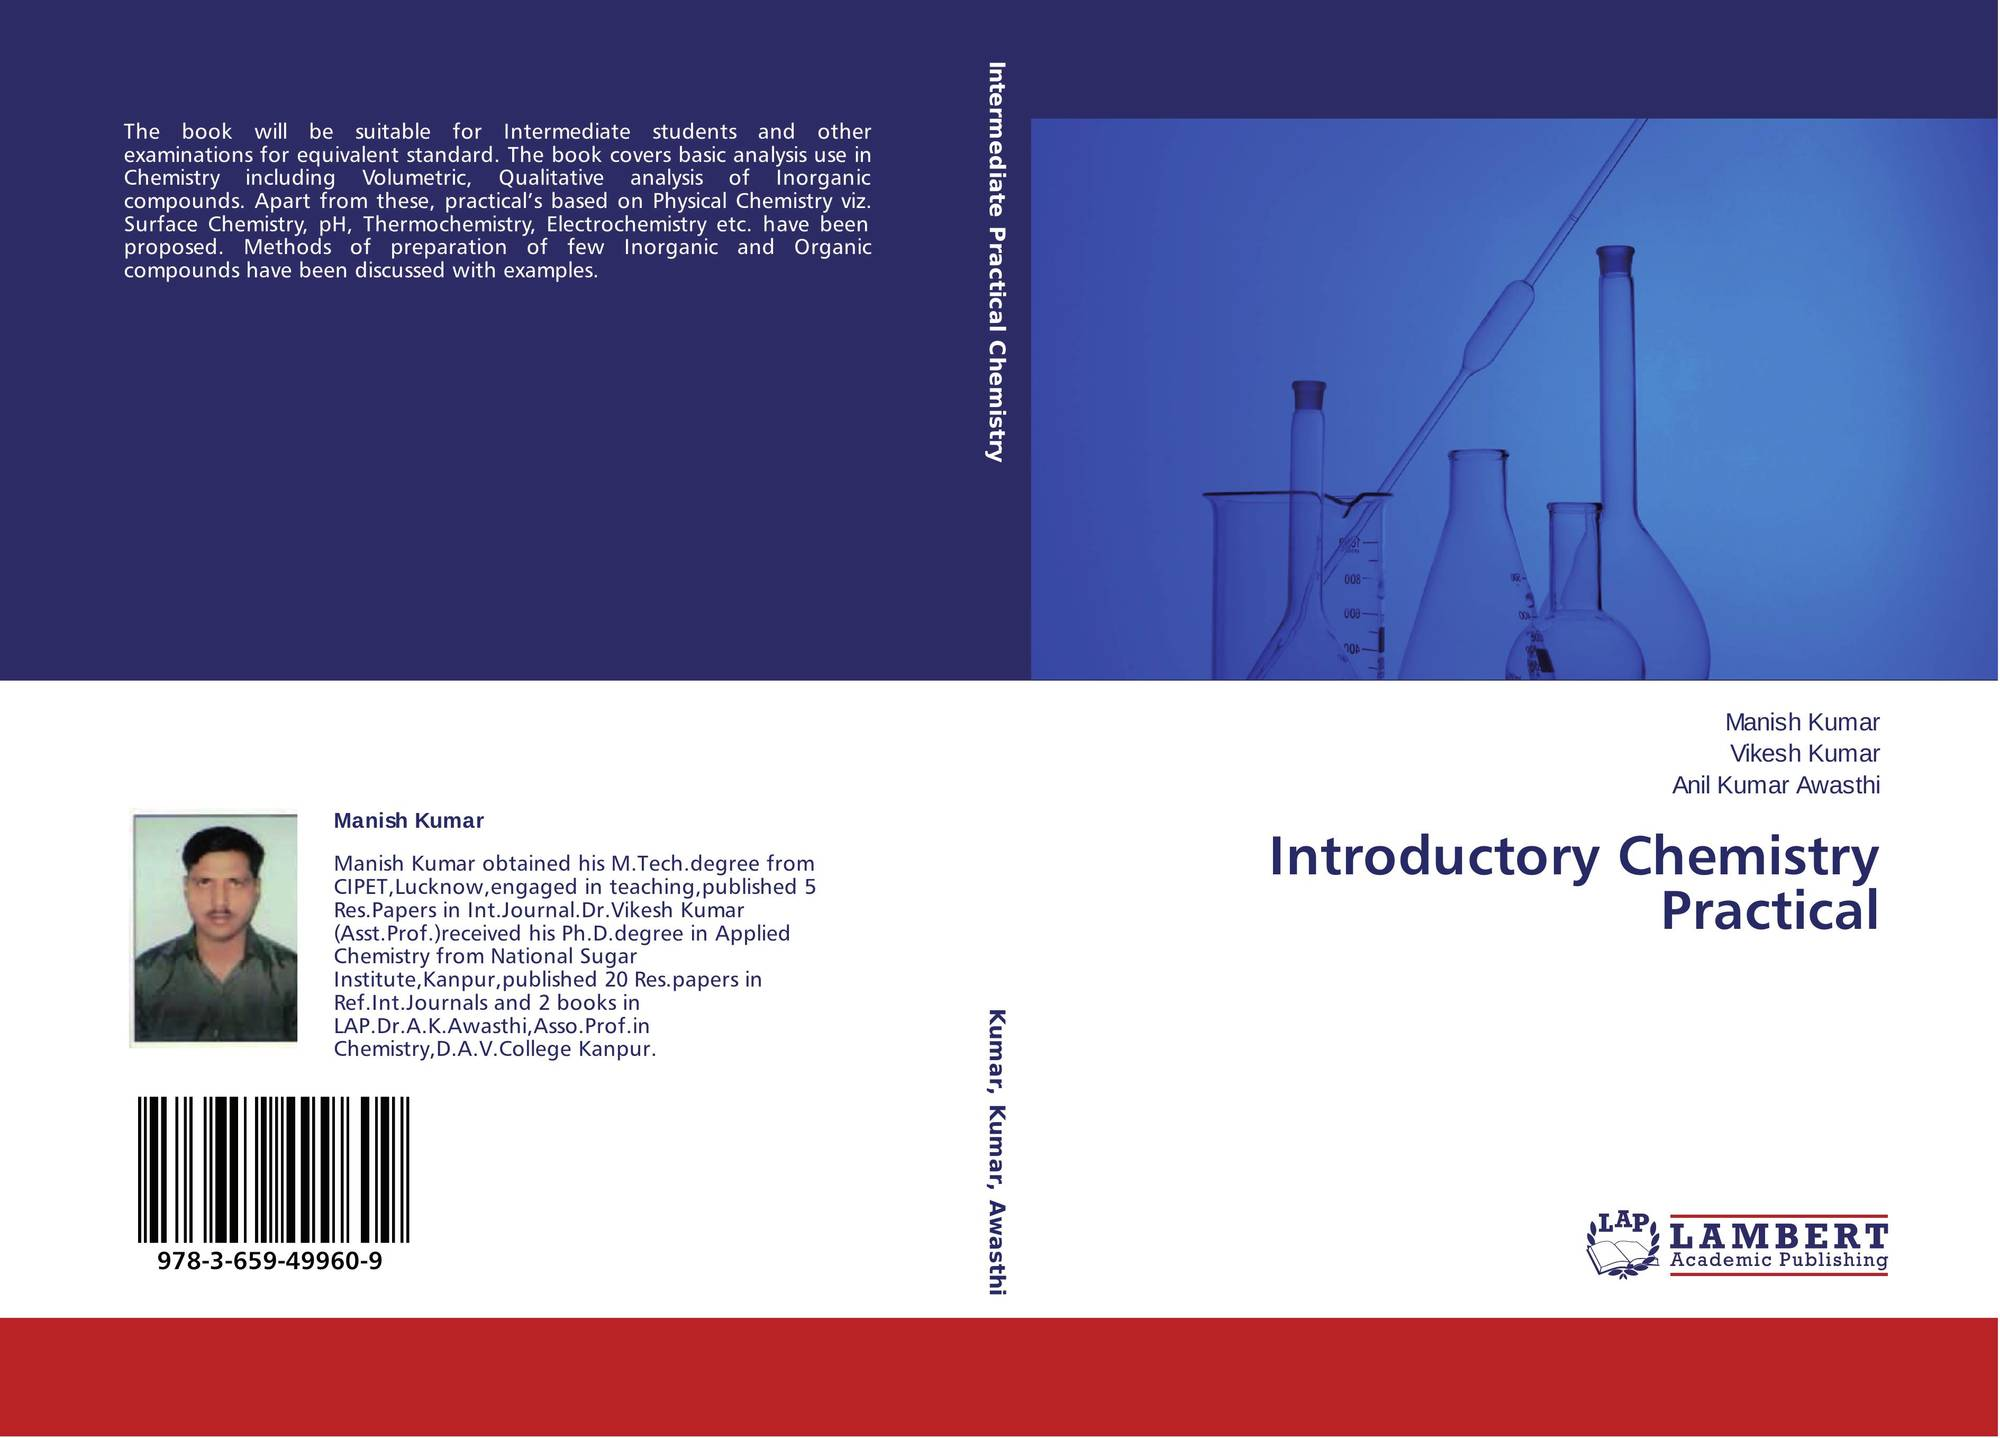 Introductory Chemistry Practical, 978-3-659-49960-9